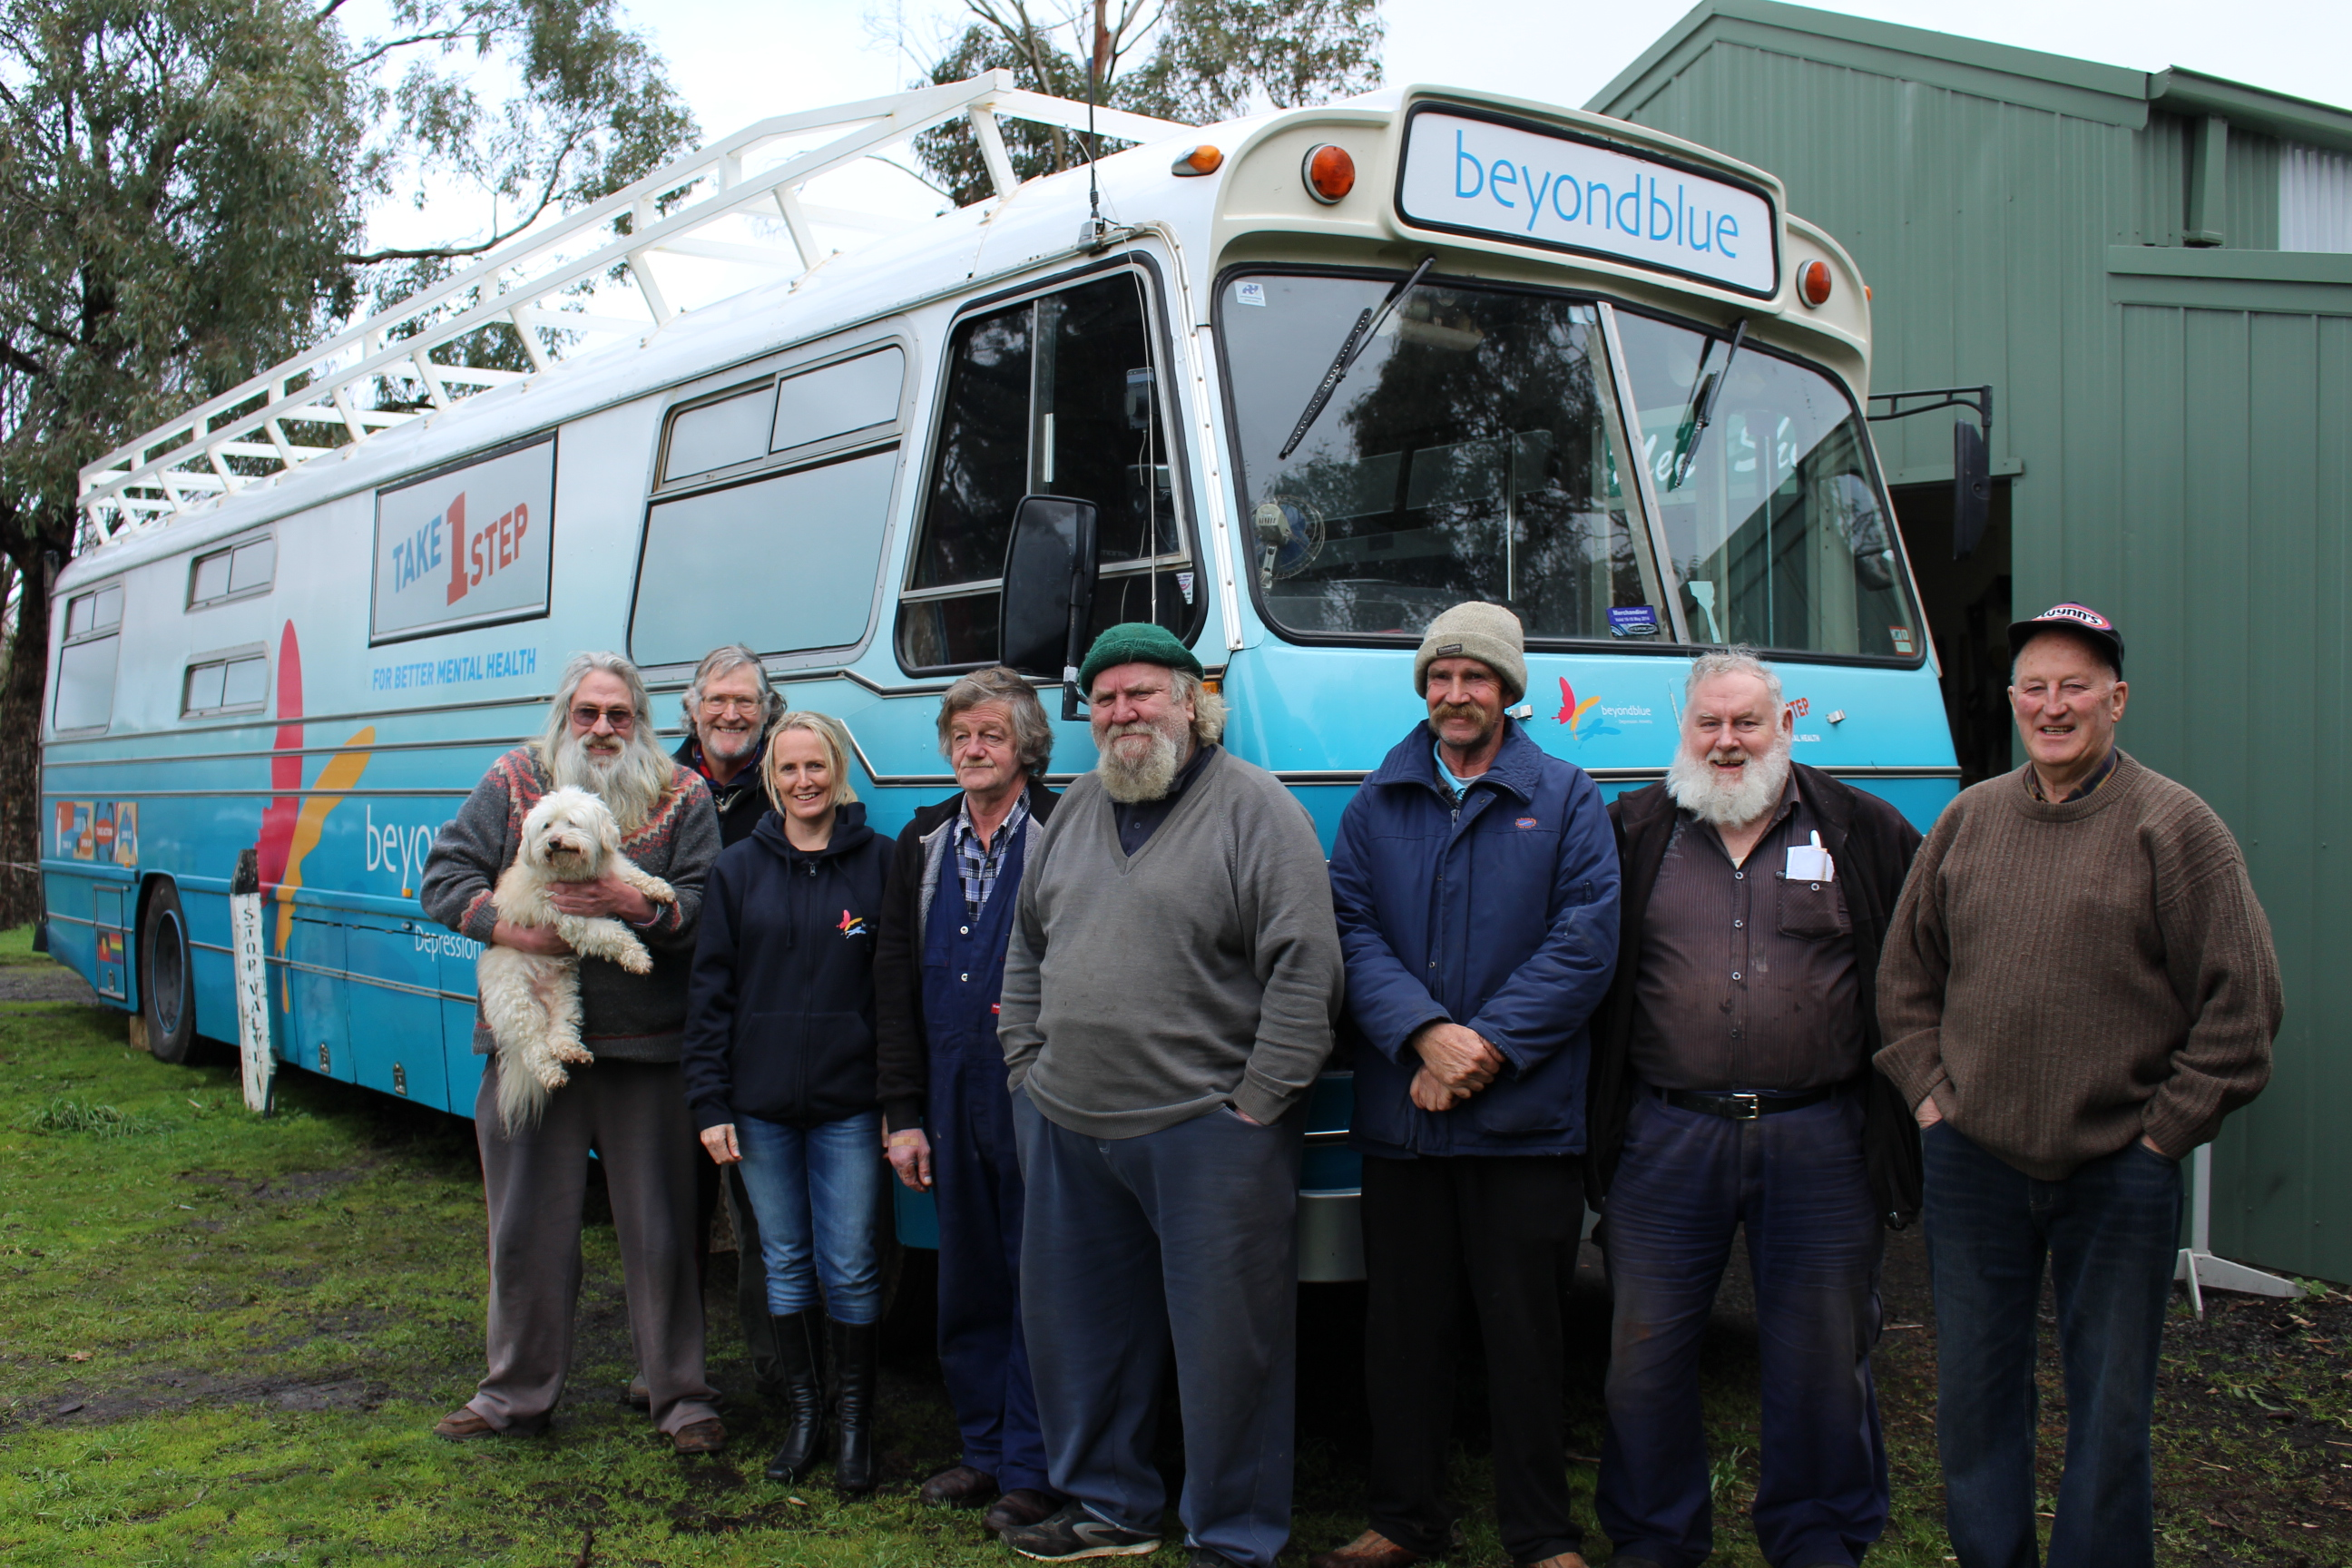 Members of Cobaw Men's Shed with Beyond Blue's Athena and Roadshow Rhonda.